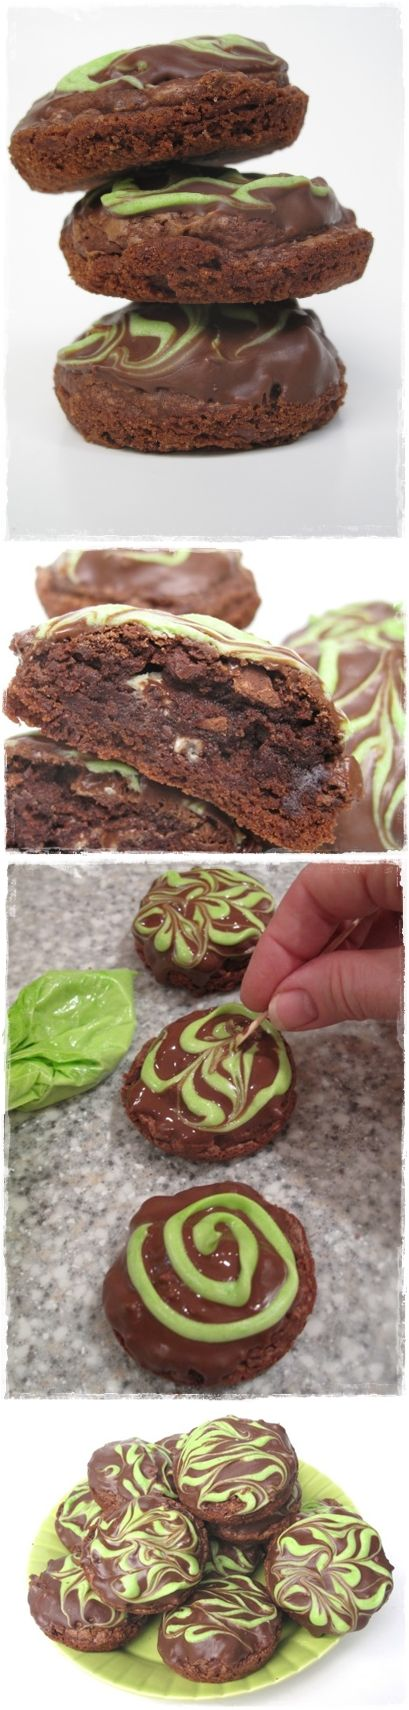 Chocolate Mint Truffle Brownie Bites | RECIPES | Pinterest